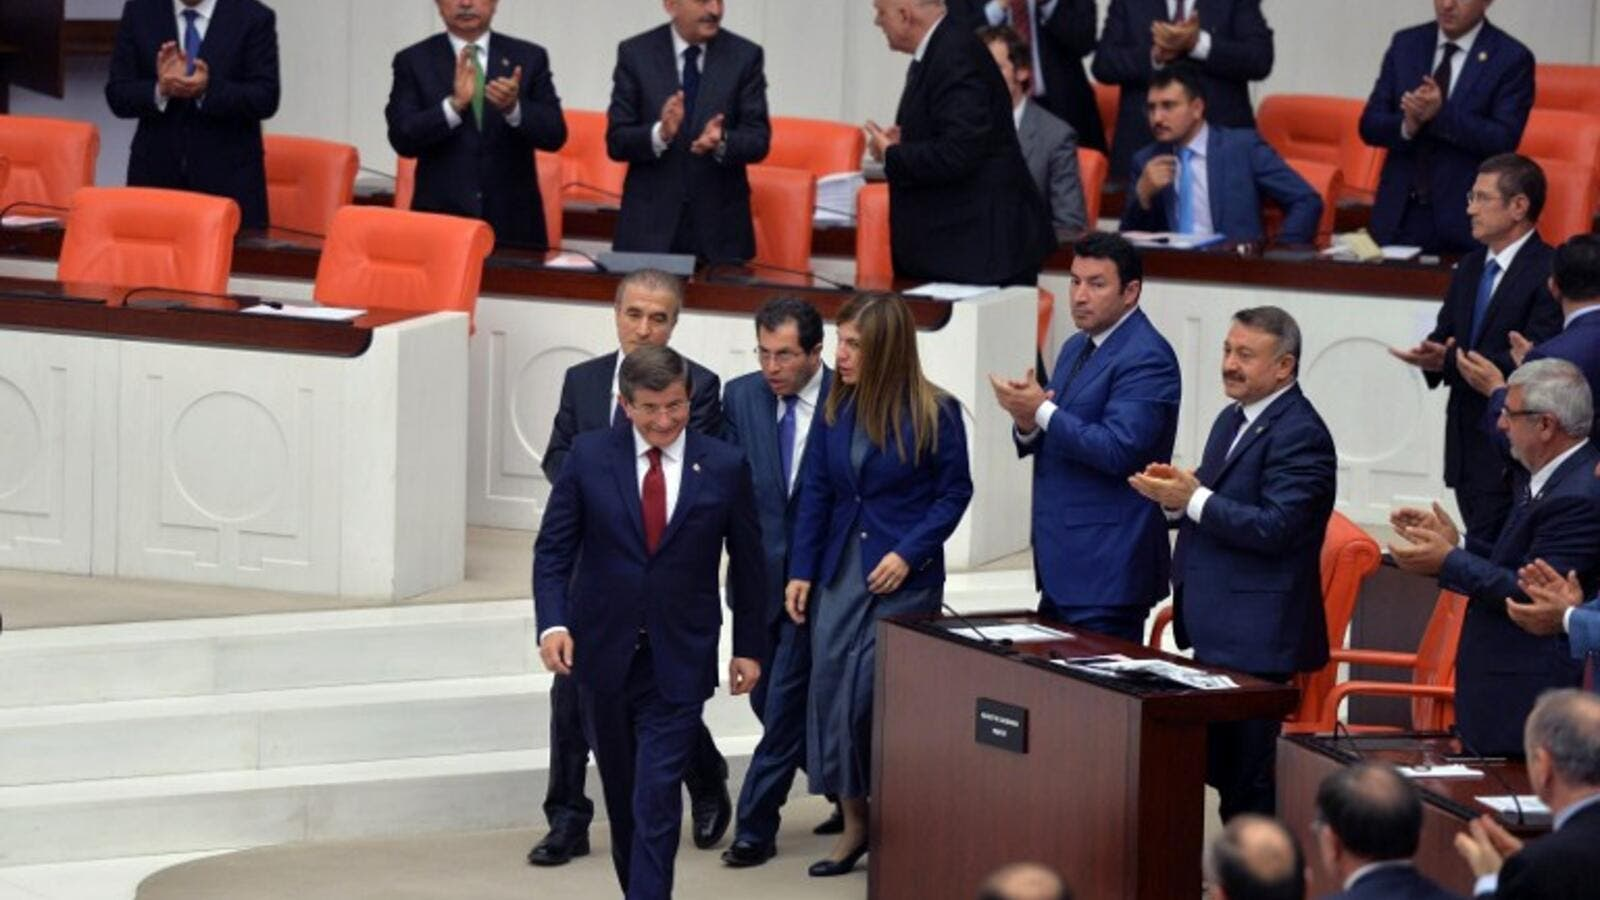 People applaud as Turkey's outgoing Prime Minister Ahmet Davutoglu (C) walks on May 17, 2016 during the discussions on the ruling AK Party's proposal regarding the amendment of the immunity at the Turkish Parliament in Ankara. (AFP/Adem Altan)